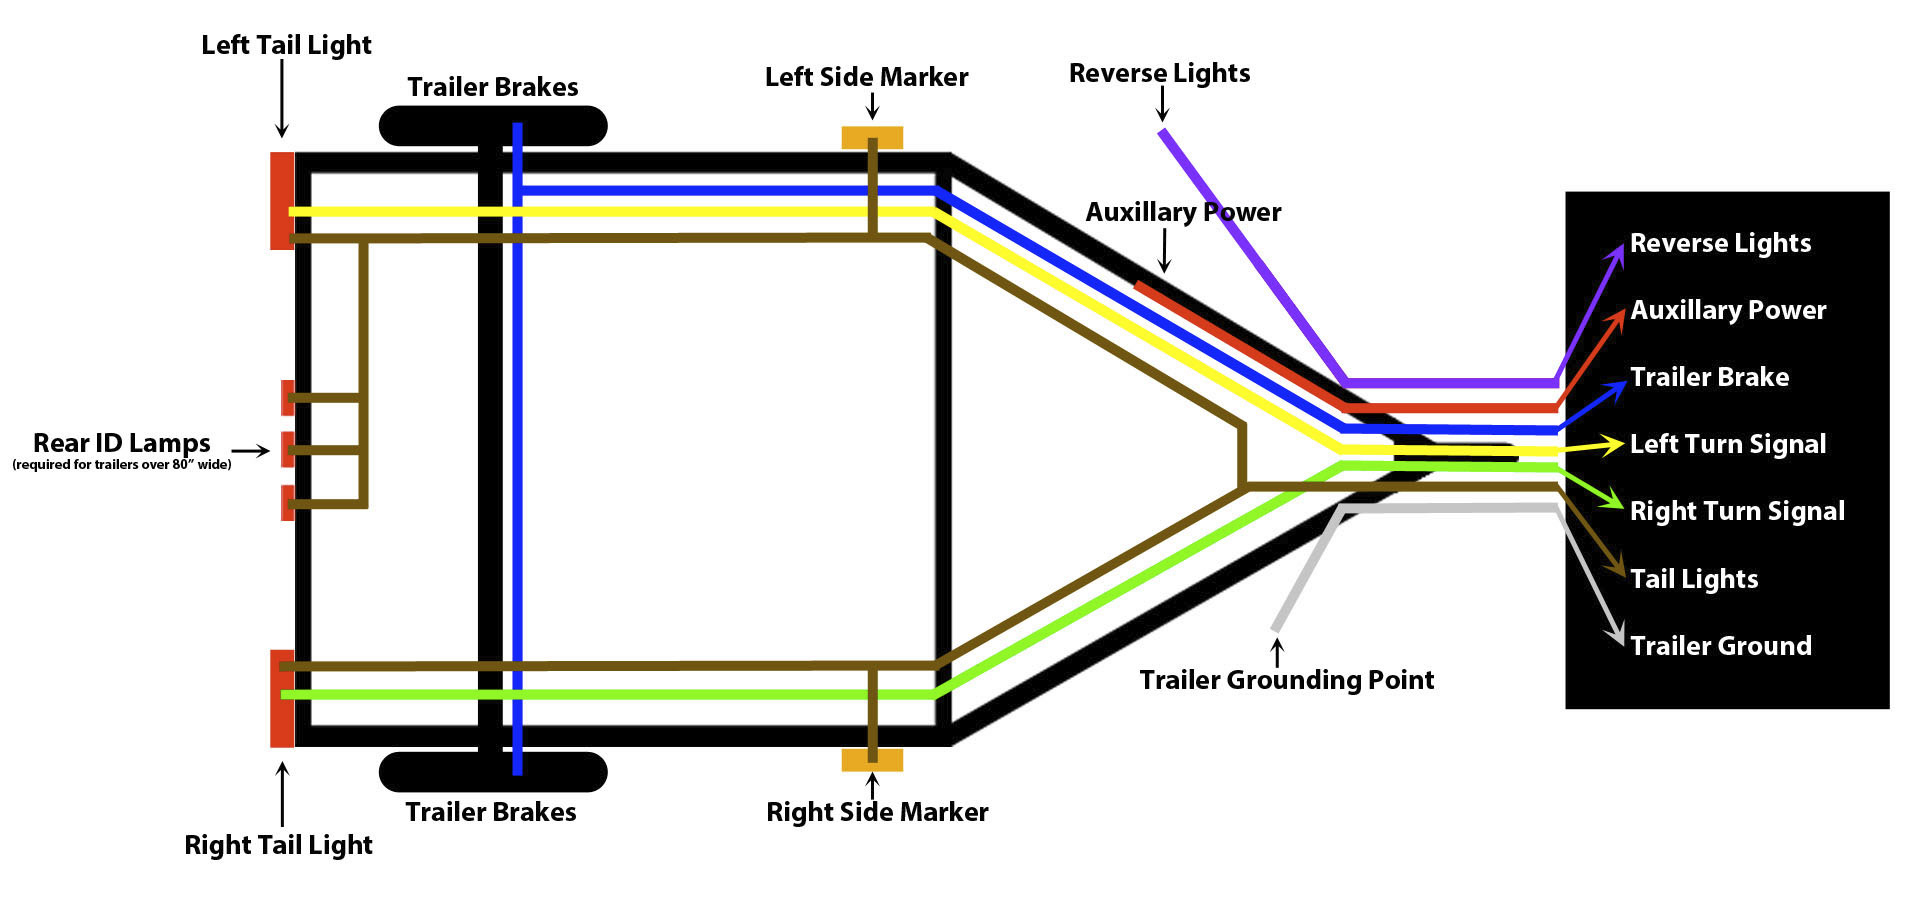 How To Wire Trailer Lights - Trailer Wiring Guide & Videos - Trailer Light Wiring Diagram 4 Wire